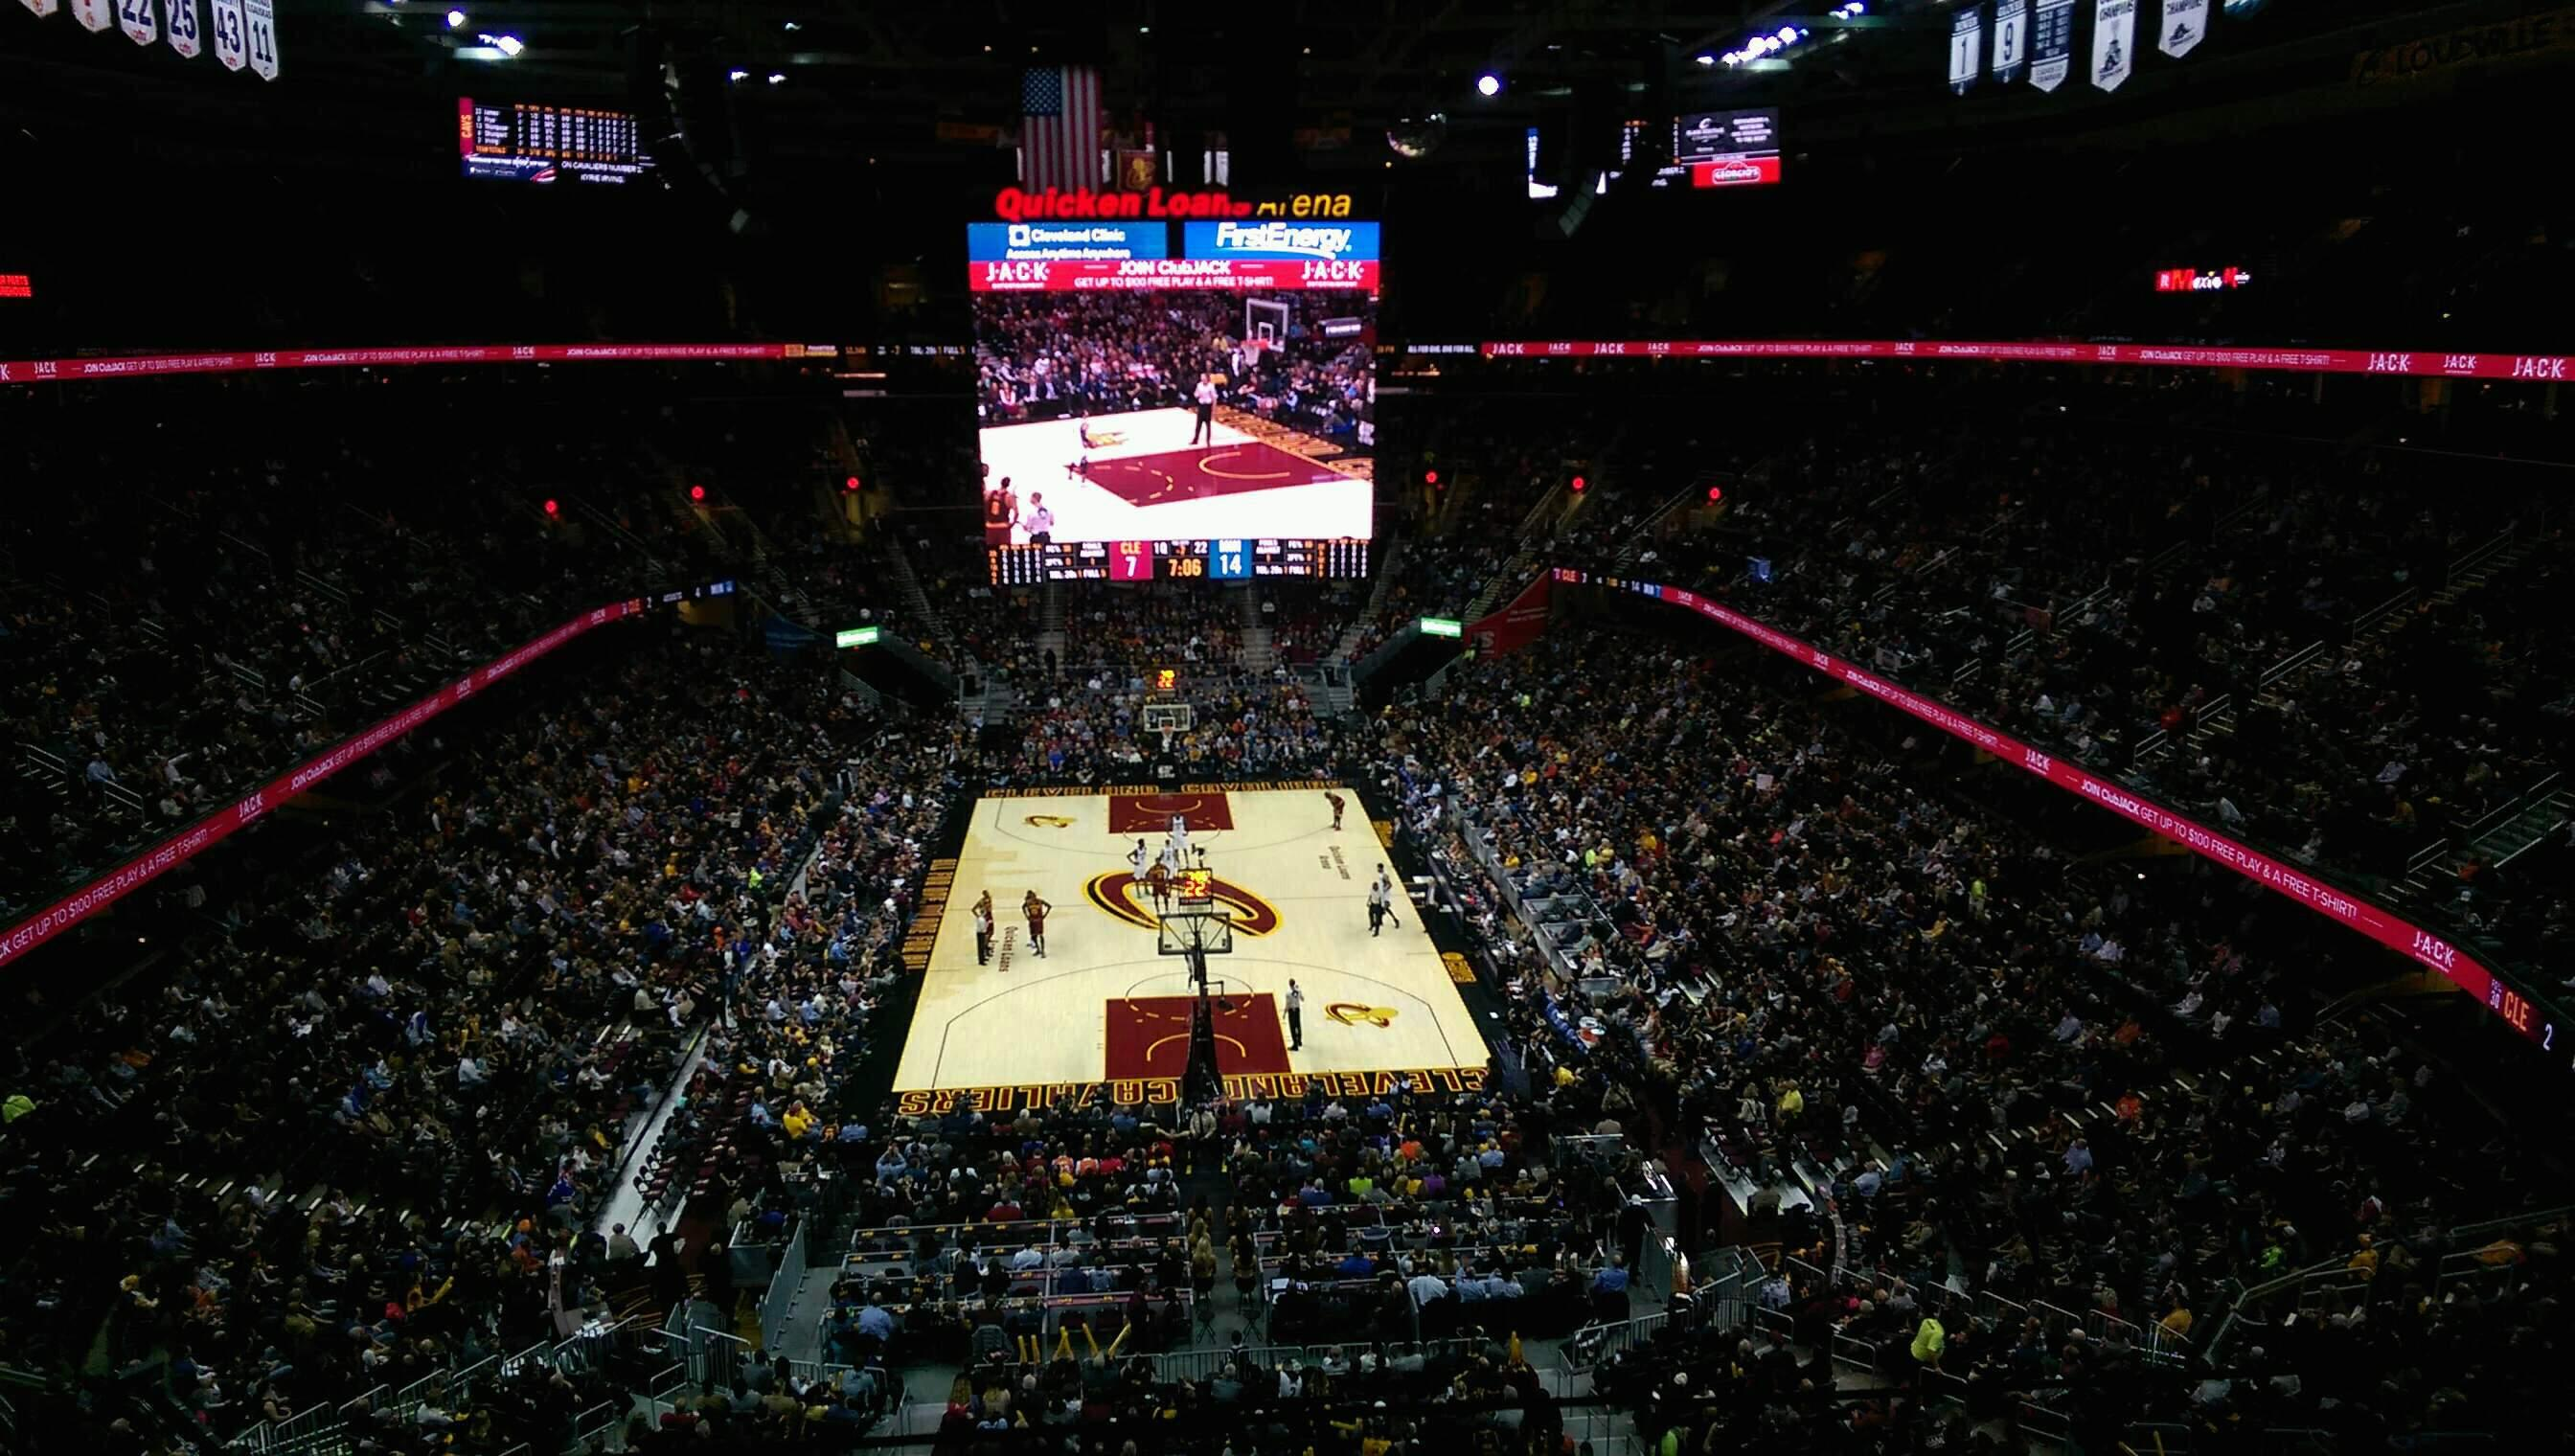 Quicken Loans Arena Section 217 Row 2 Seat 4